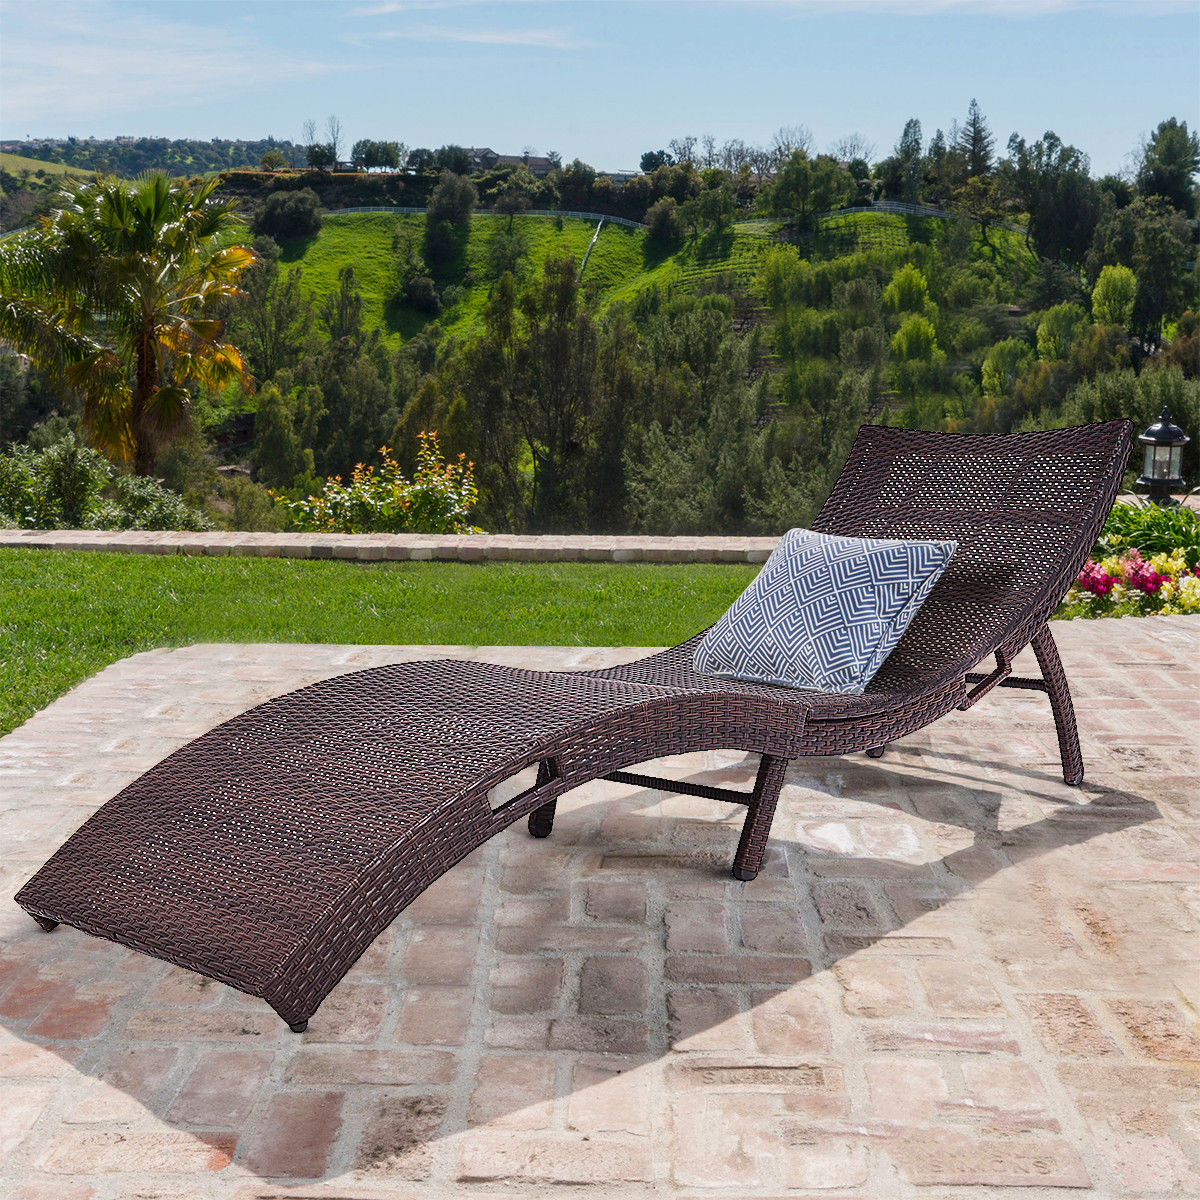 Costway Mix Brown Folding Patio Rattan Chaise Lounge Chair Outdoor Furniture Pool side by Costway